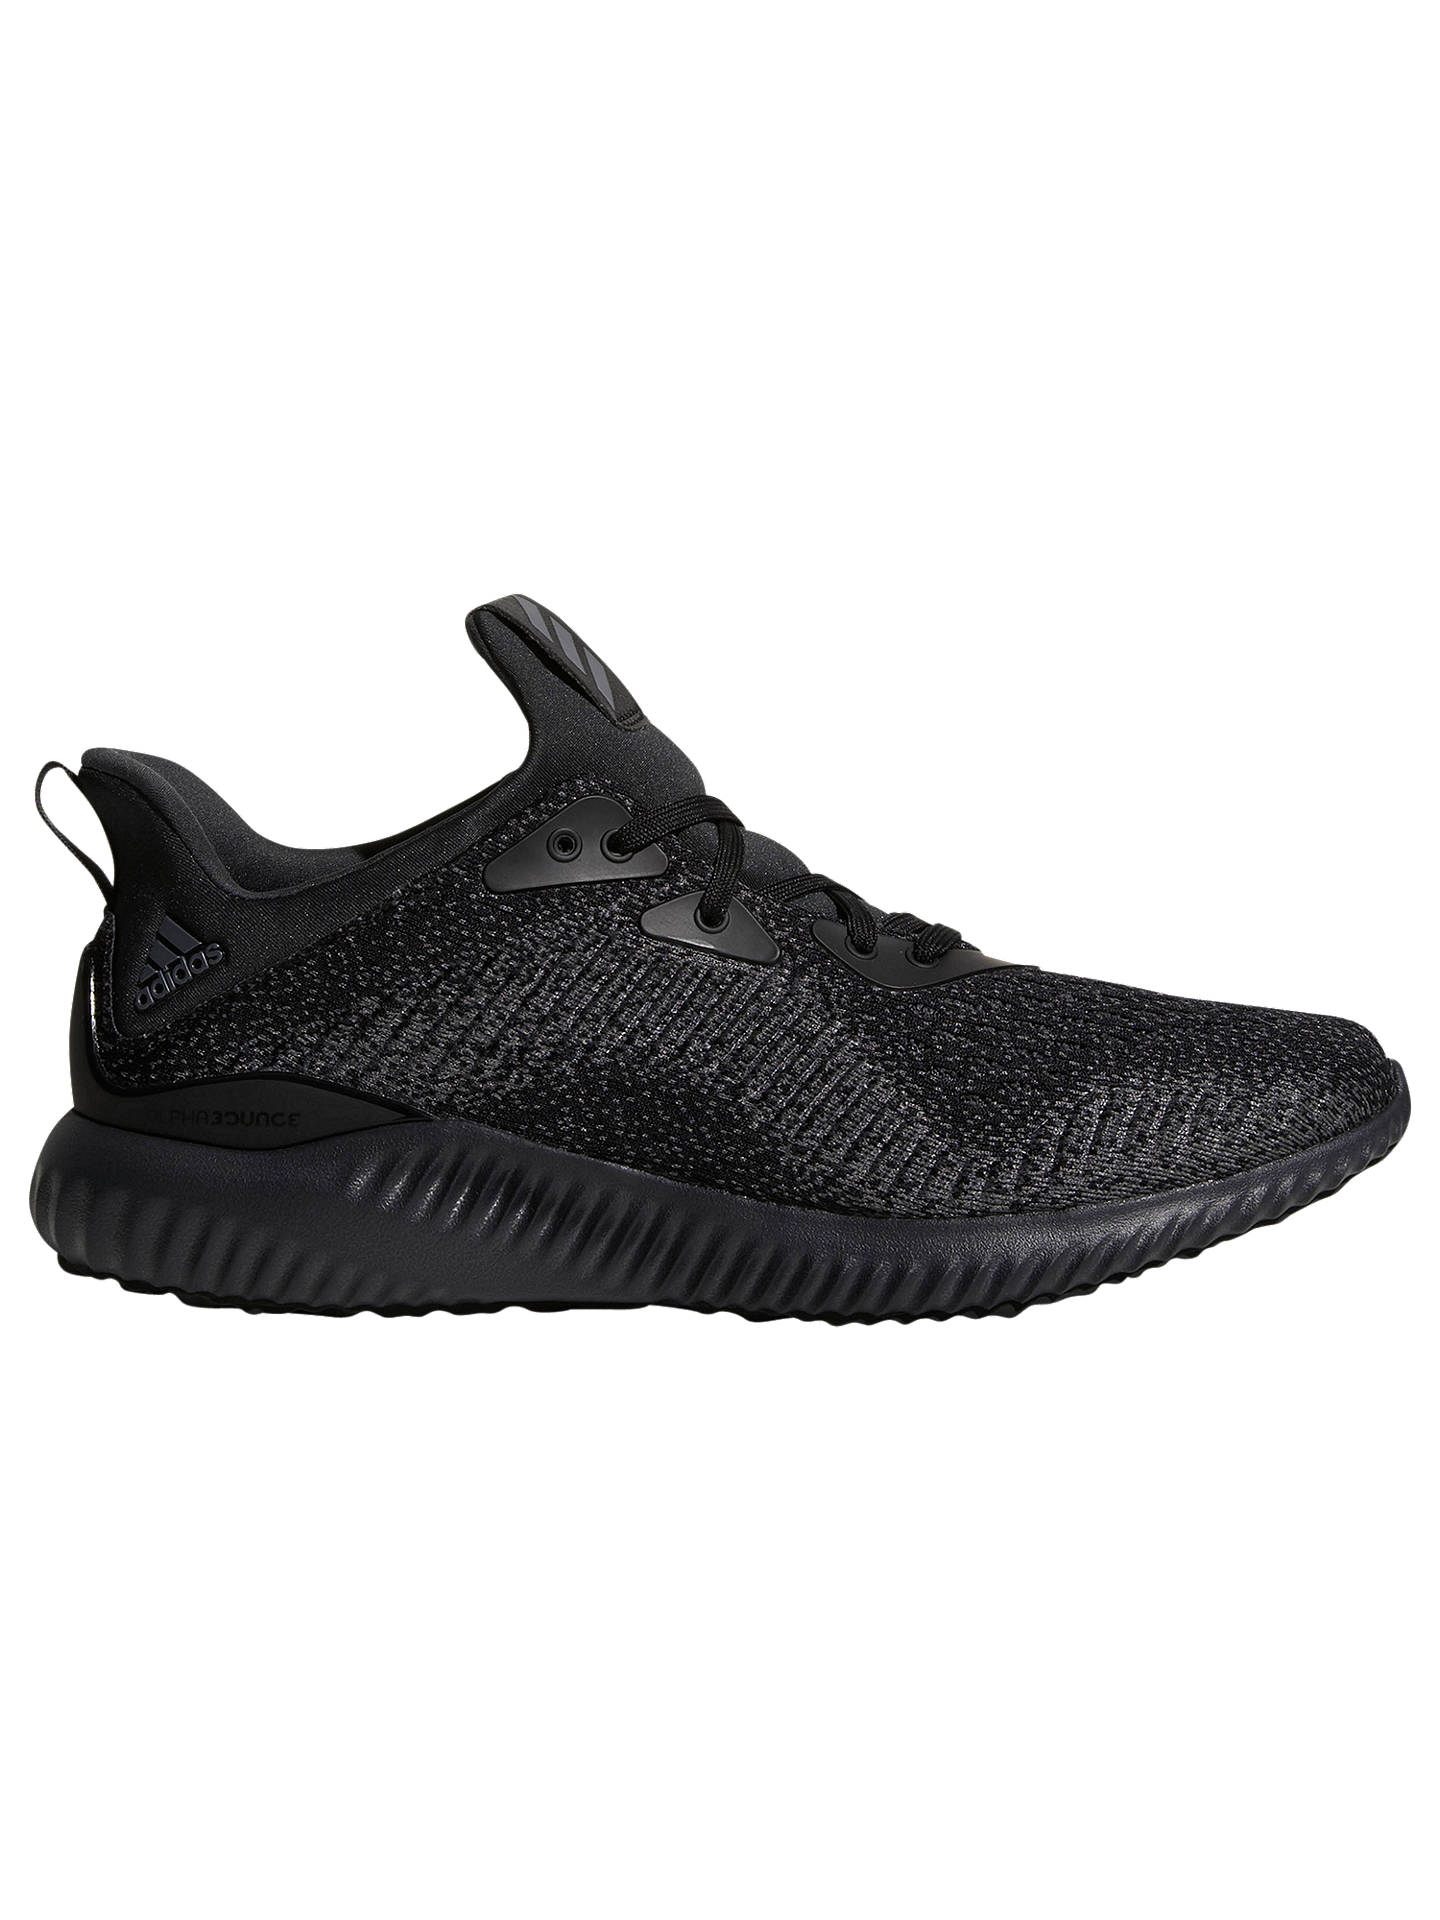 lowest price e4a3f 361e0 Buyadidas Alphabounce EM Mens Running Shoes, Black, 7 Online at johnlewis.  ...